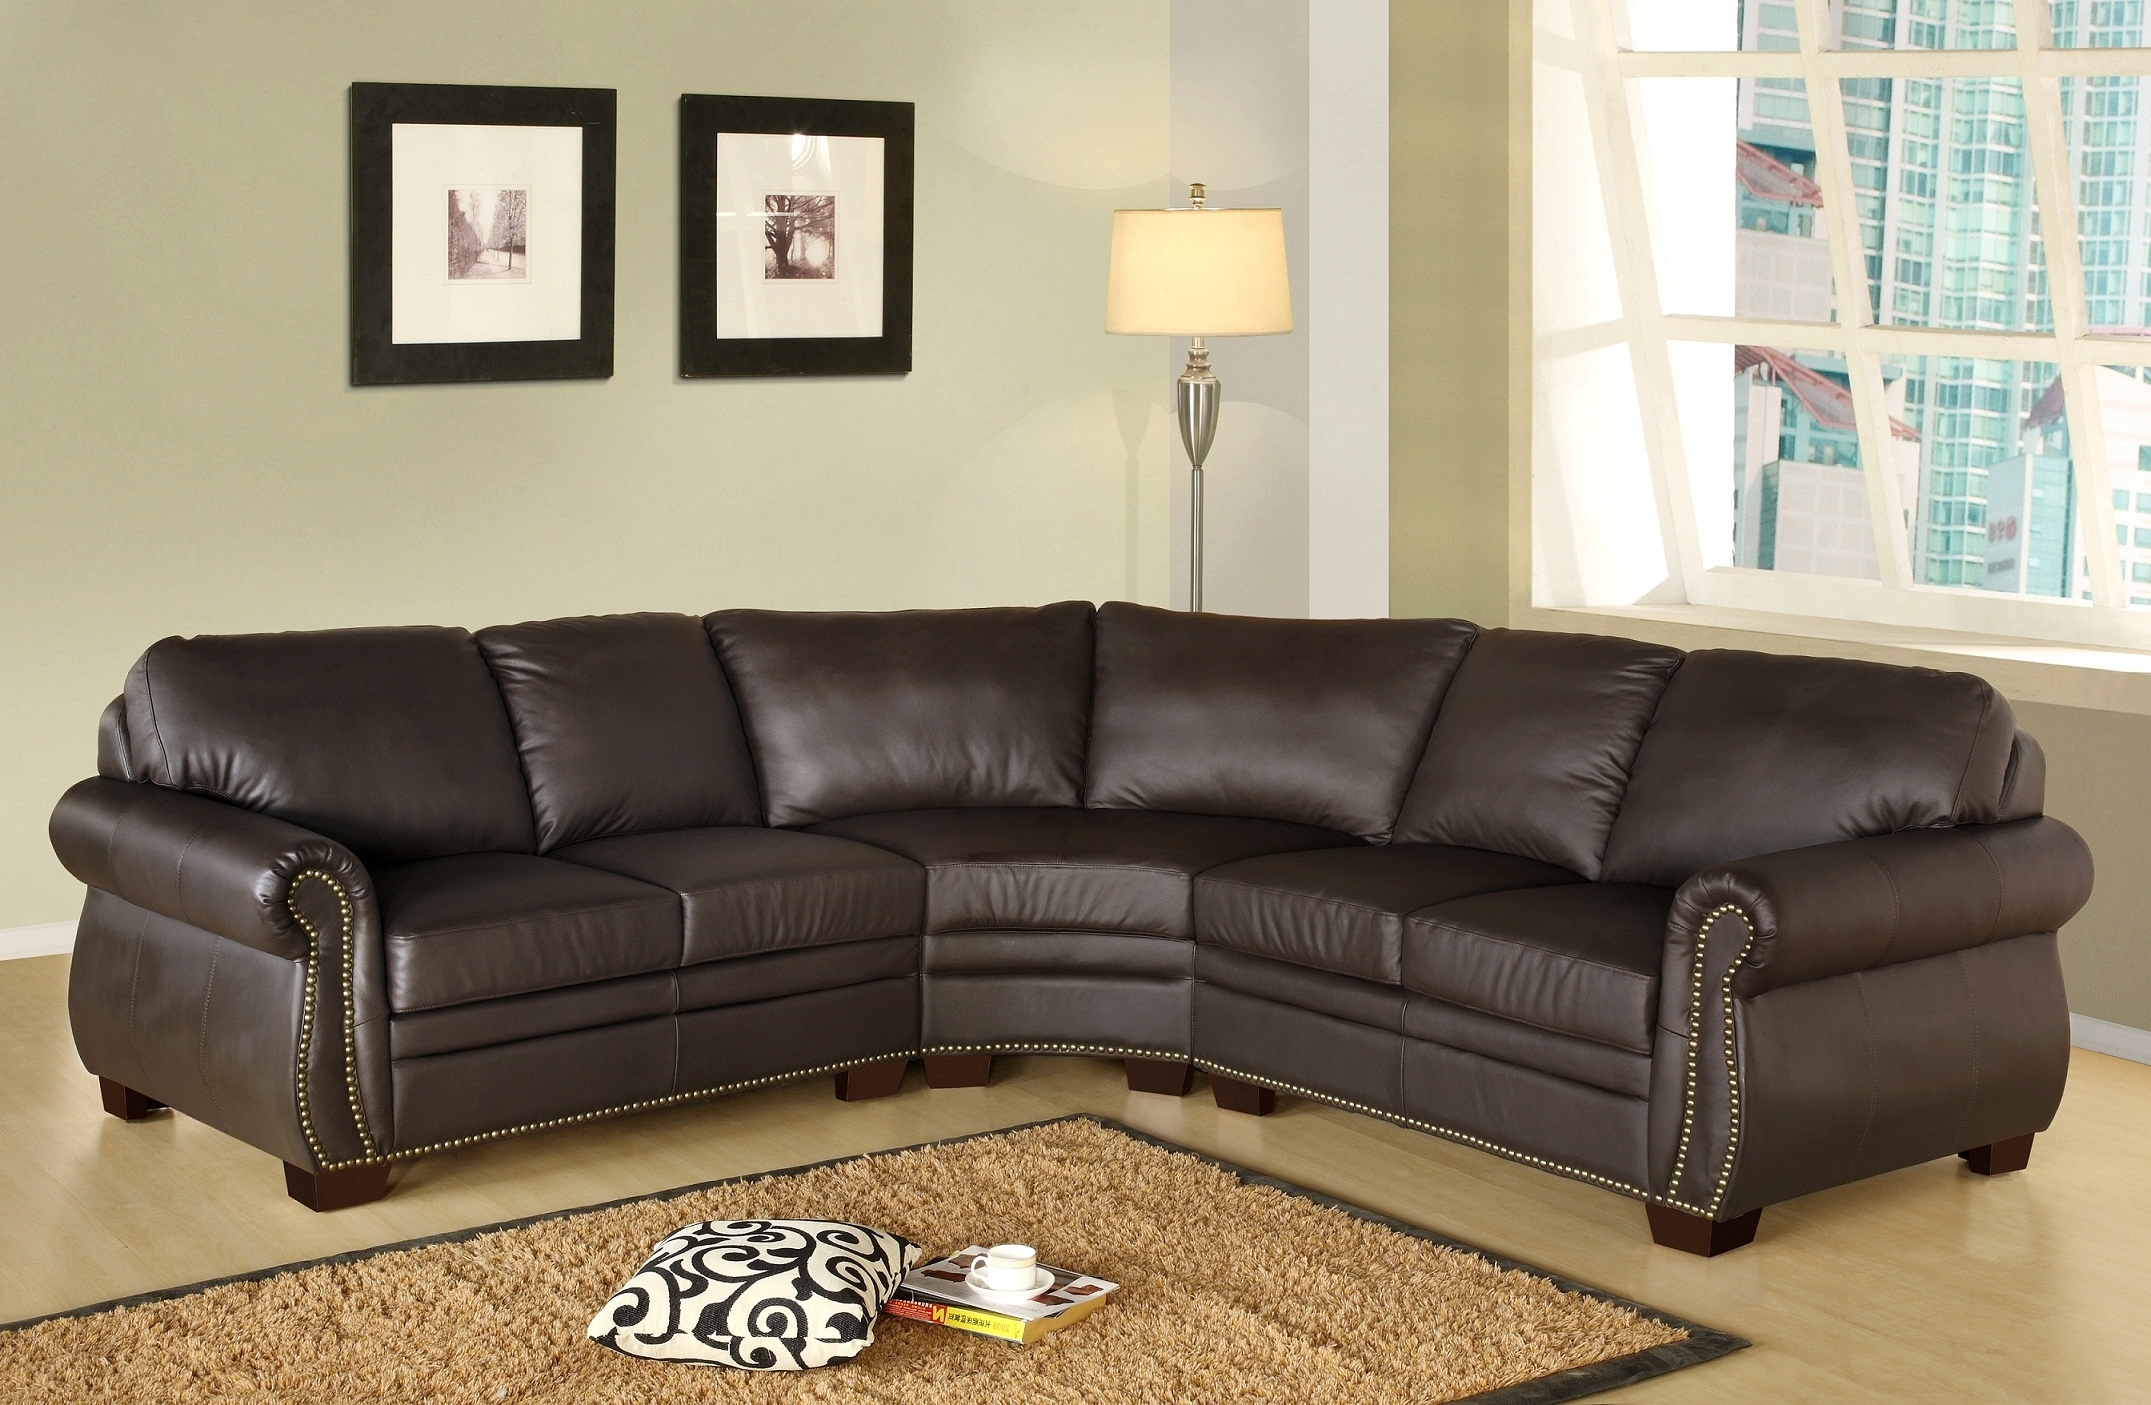 2019 Overstock Credit Card Sectional Couch Ikea Wayfair Coupon Ethan For Abbyson Sectional Sofas (View 8 of 20)